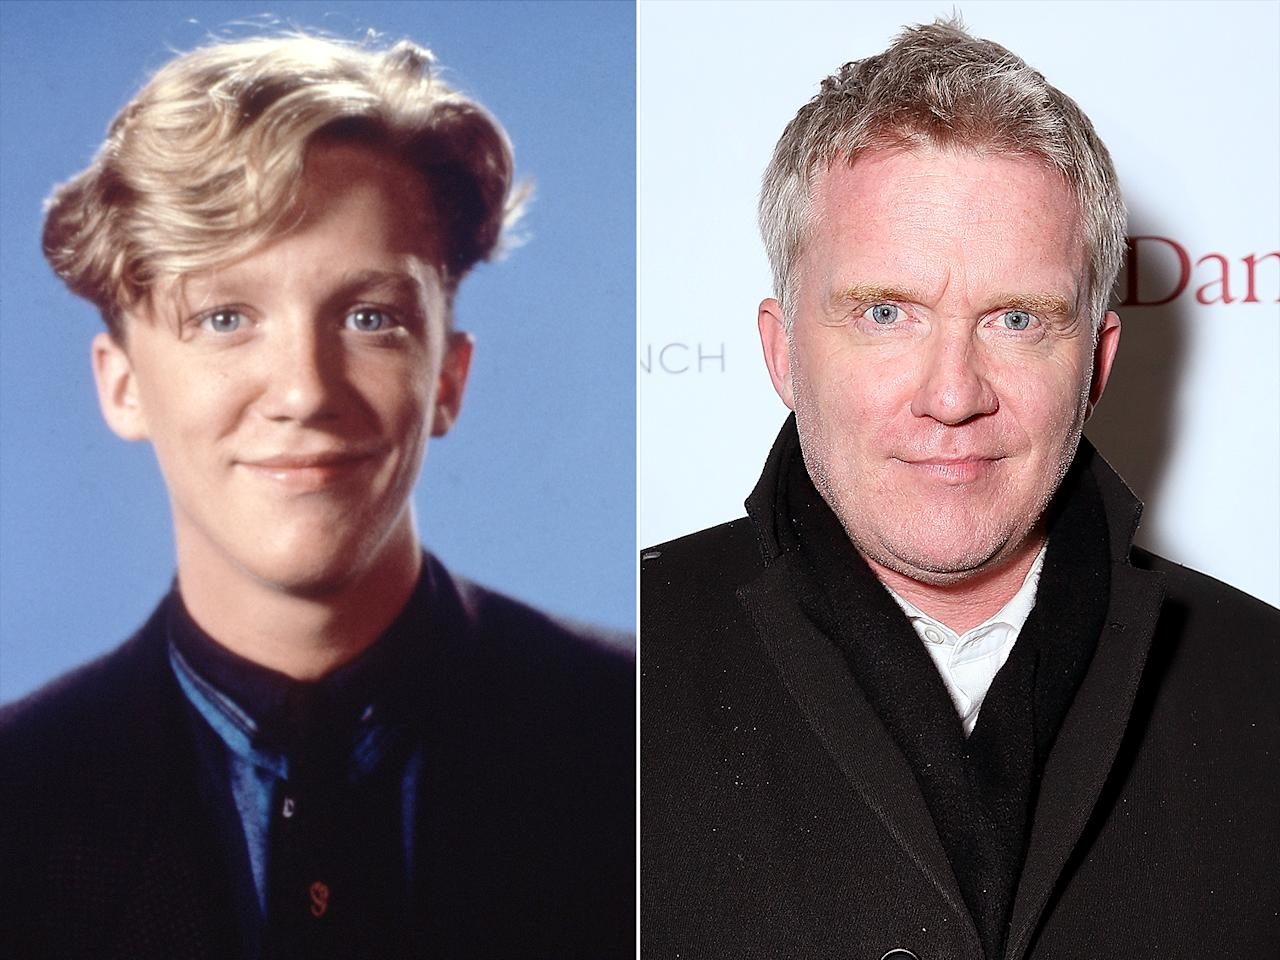 <p>Following his Brat Pack years, Hall, 48, joined the cast of <em>Saturday Night Live </em>and earned roles in films like <em>Weird Science </em>and <em>Edward Scissorhands. </em>He was later featured on the TV series <em>The Dead Zone</em>, and most recently <em>Awkward., Psych</em> and <em>Murder in the First.</em></p>